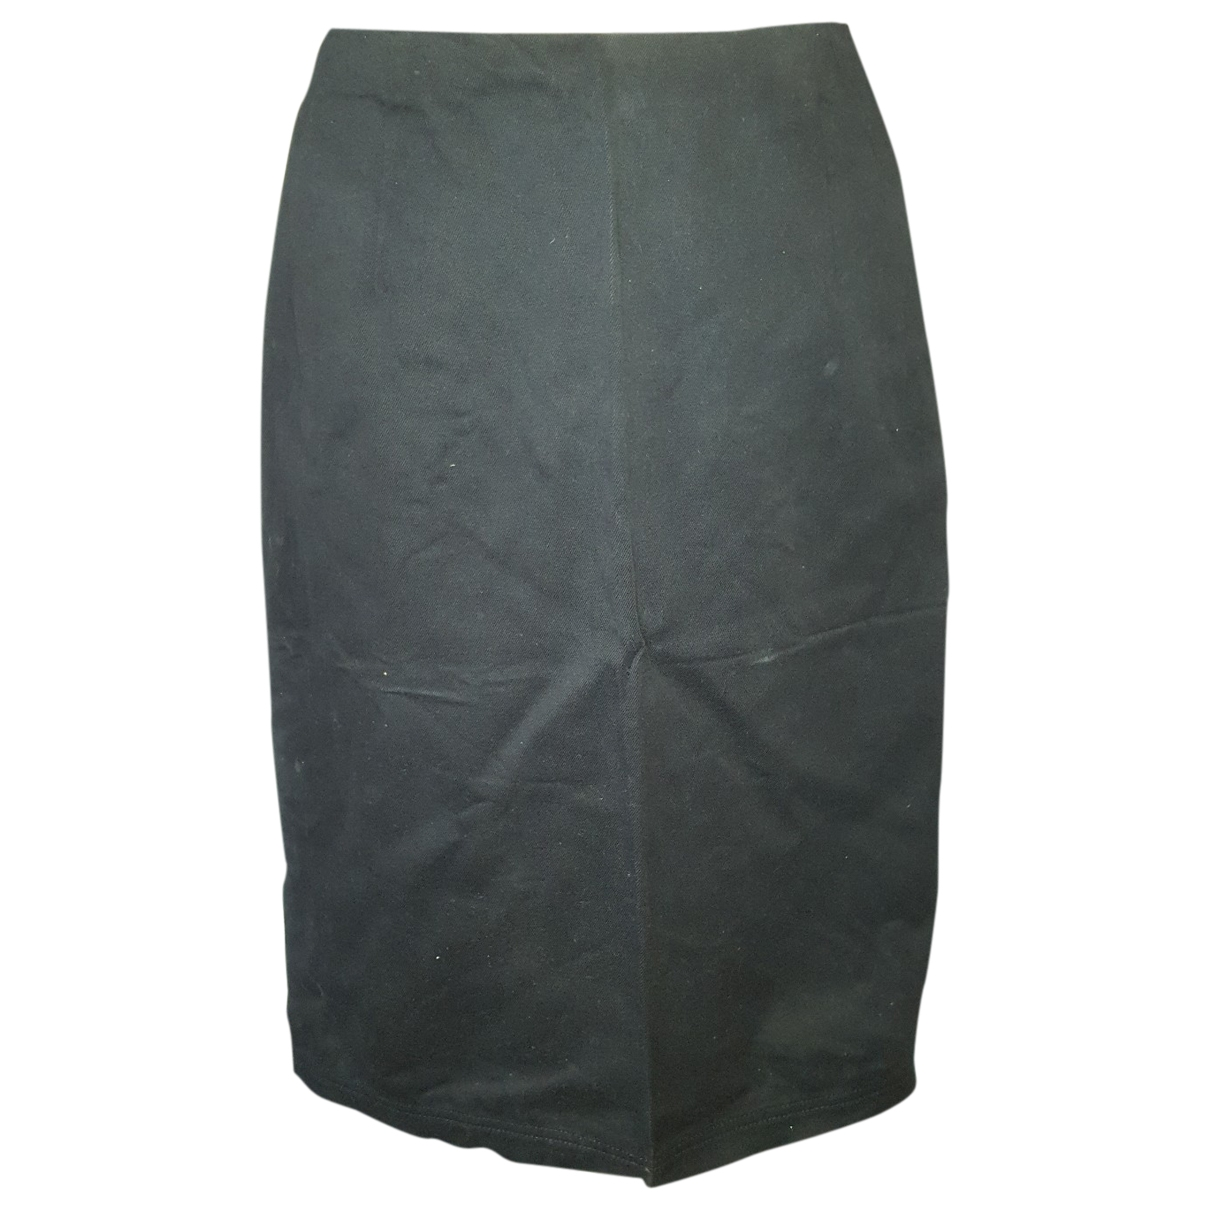 Prada \N Black Cotton - elasthane skirt for Women 40 IT